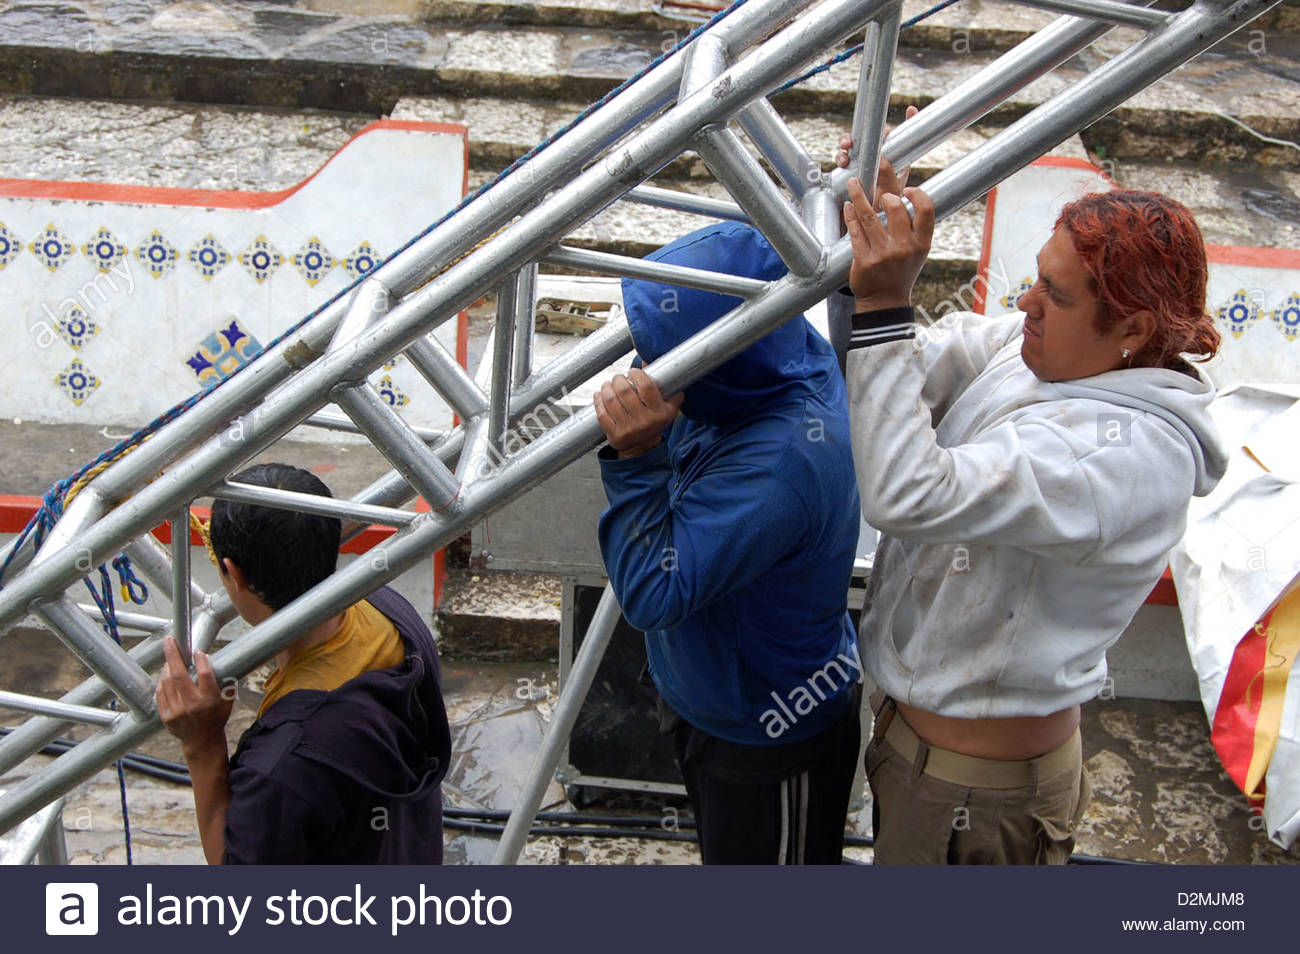 Closeup shot group of Mexican men roadies setting up scaffolding for outdoor concert in the rain. - Stock Image